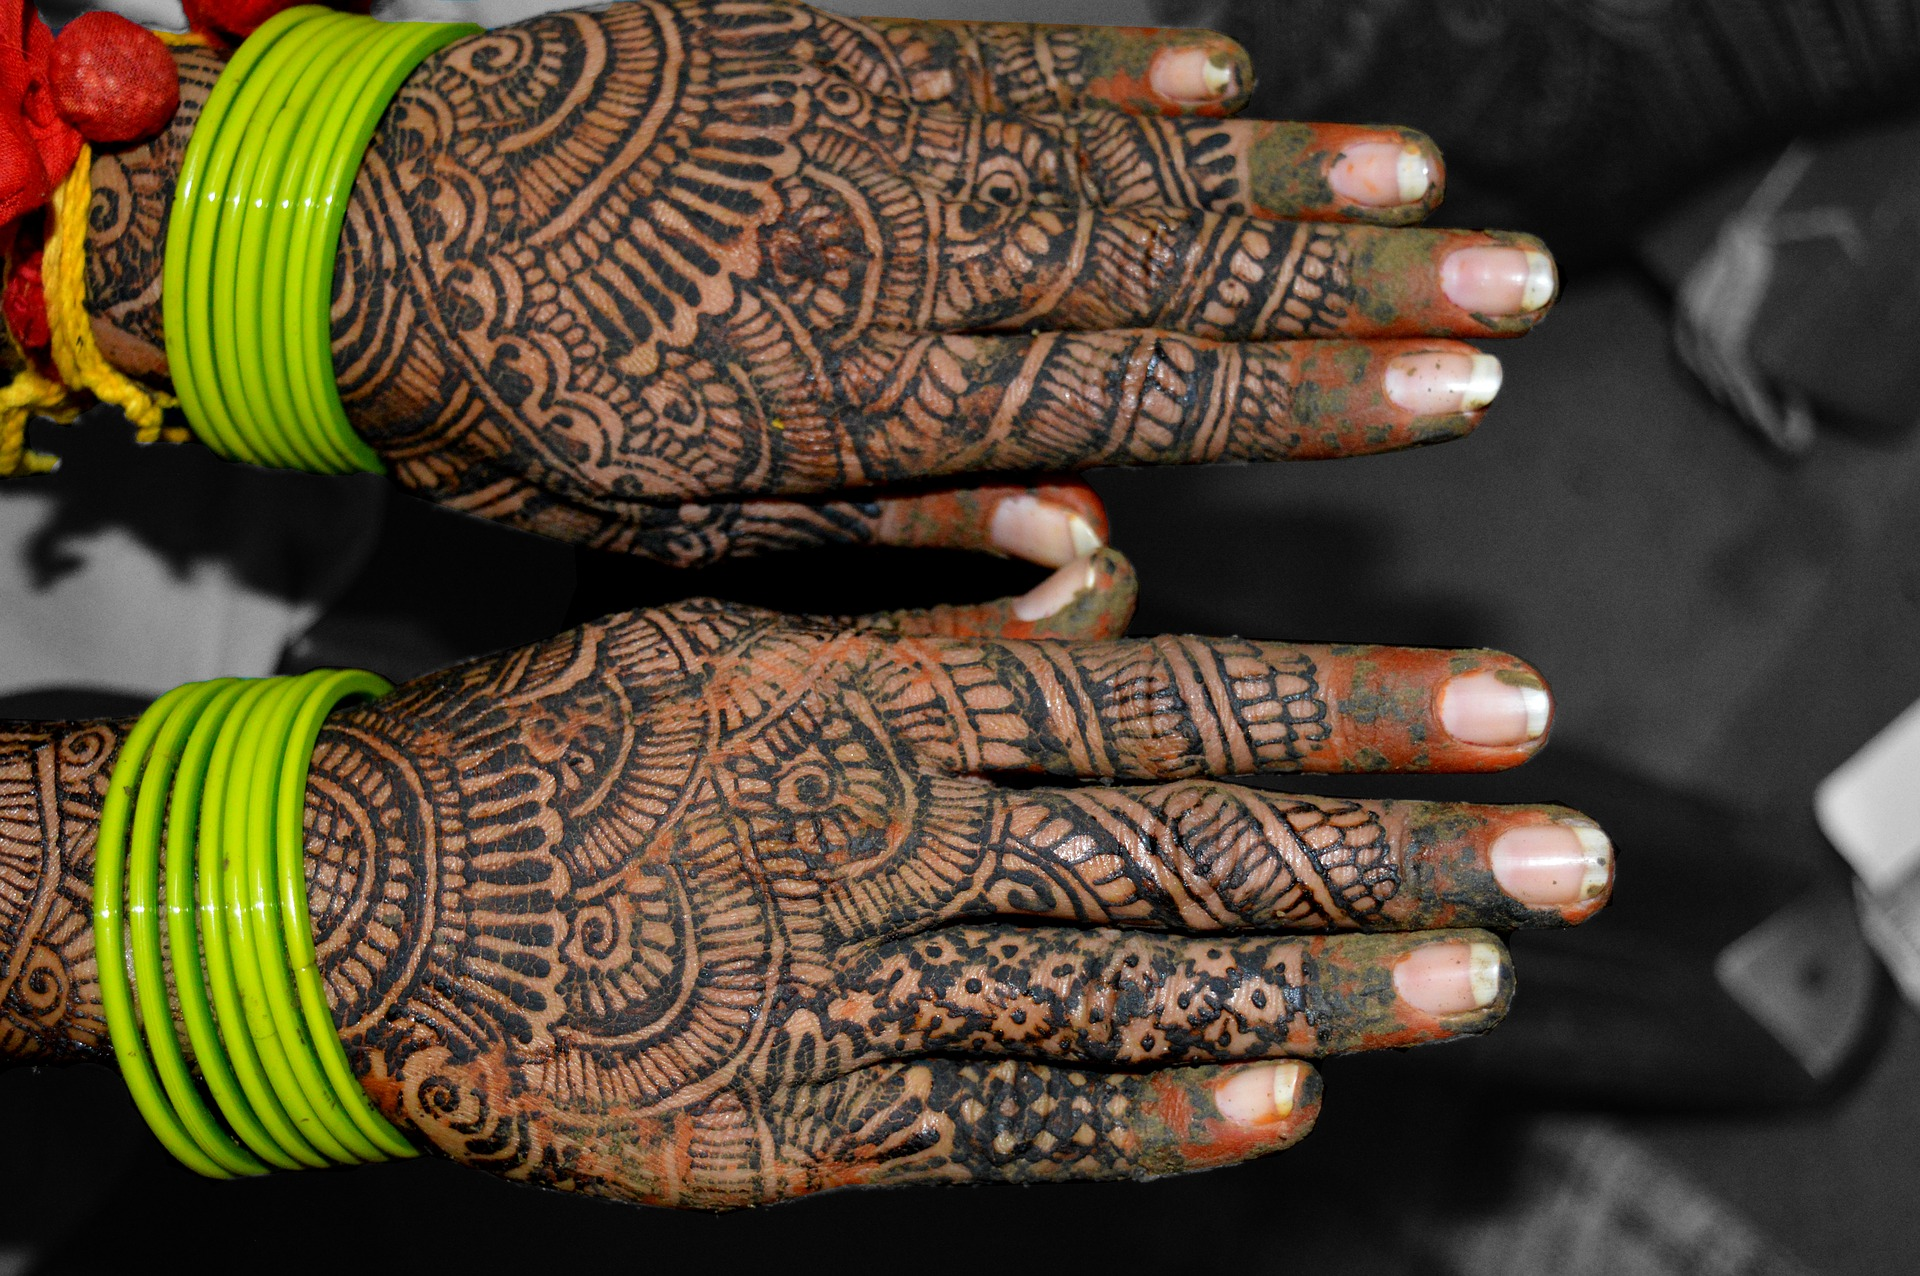 picture of hands with henna design, one of the wedding traditions from India